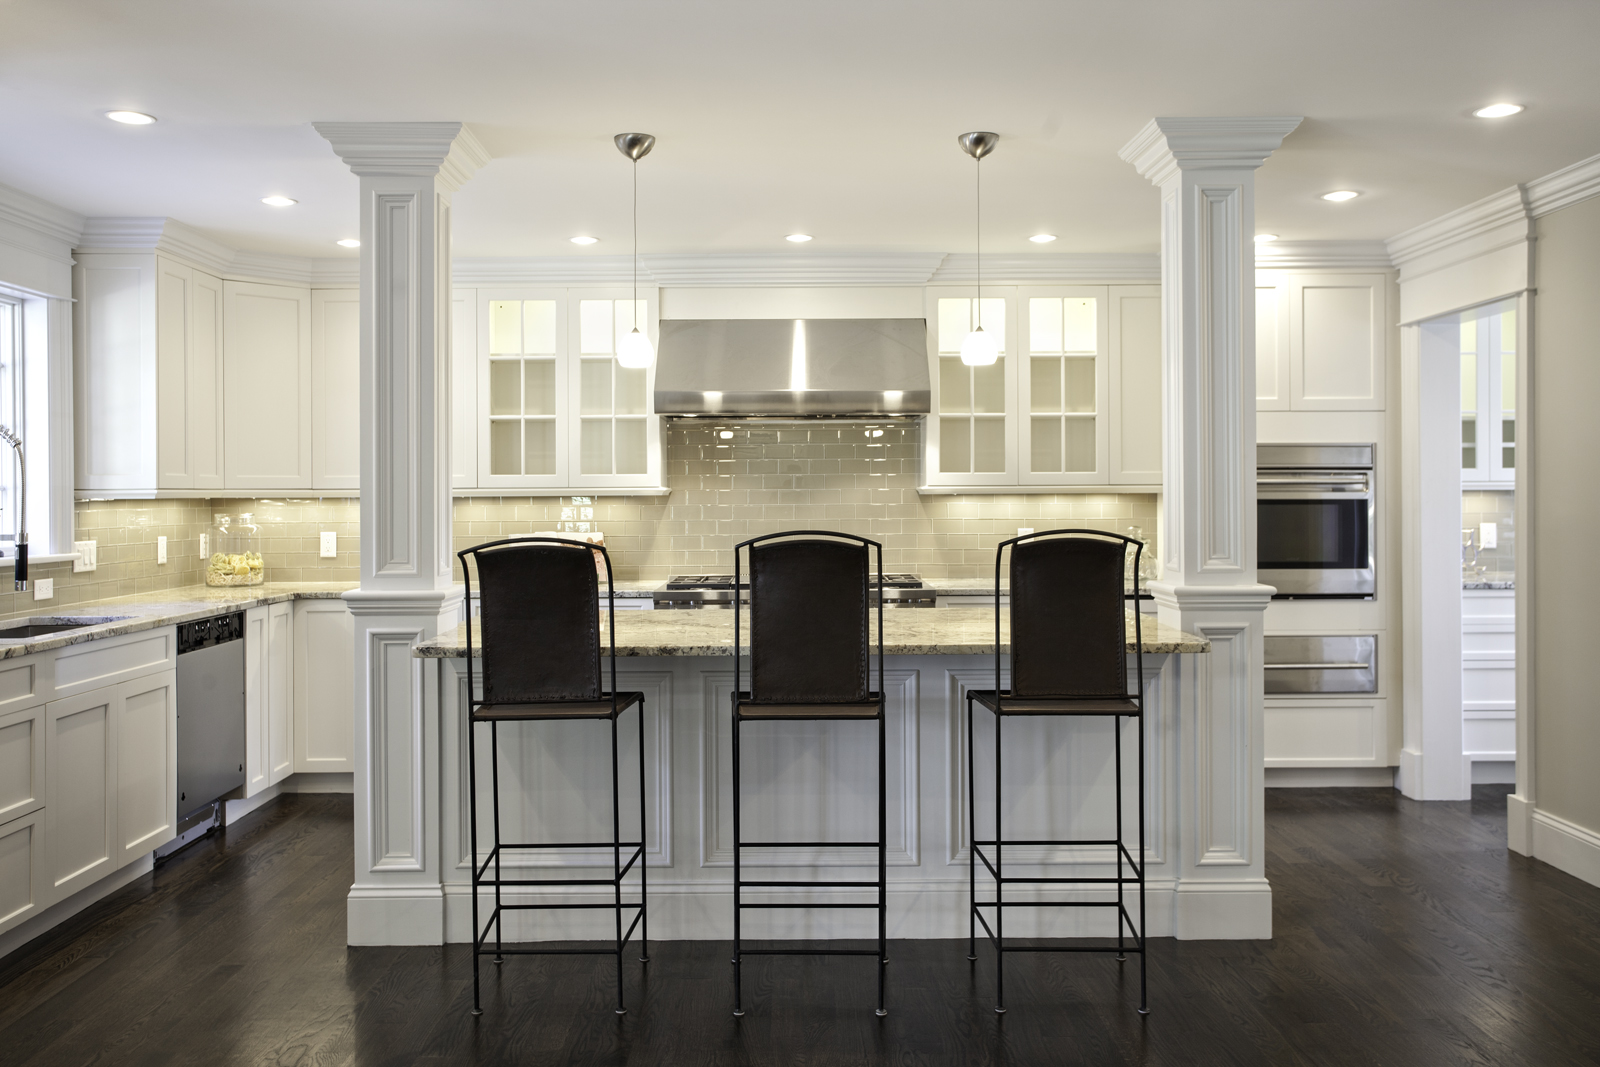 kitchen design centers massachusetts gallery kitchen and bath design center and remodeling 249